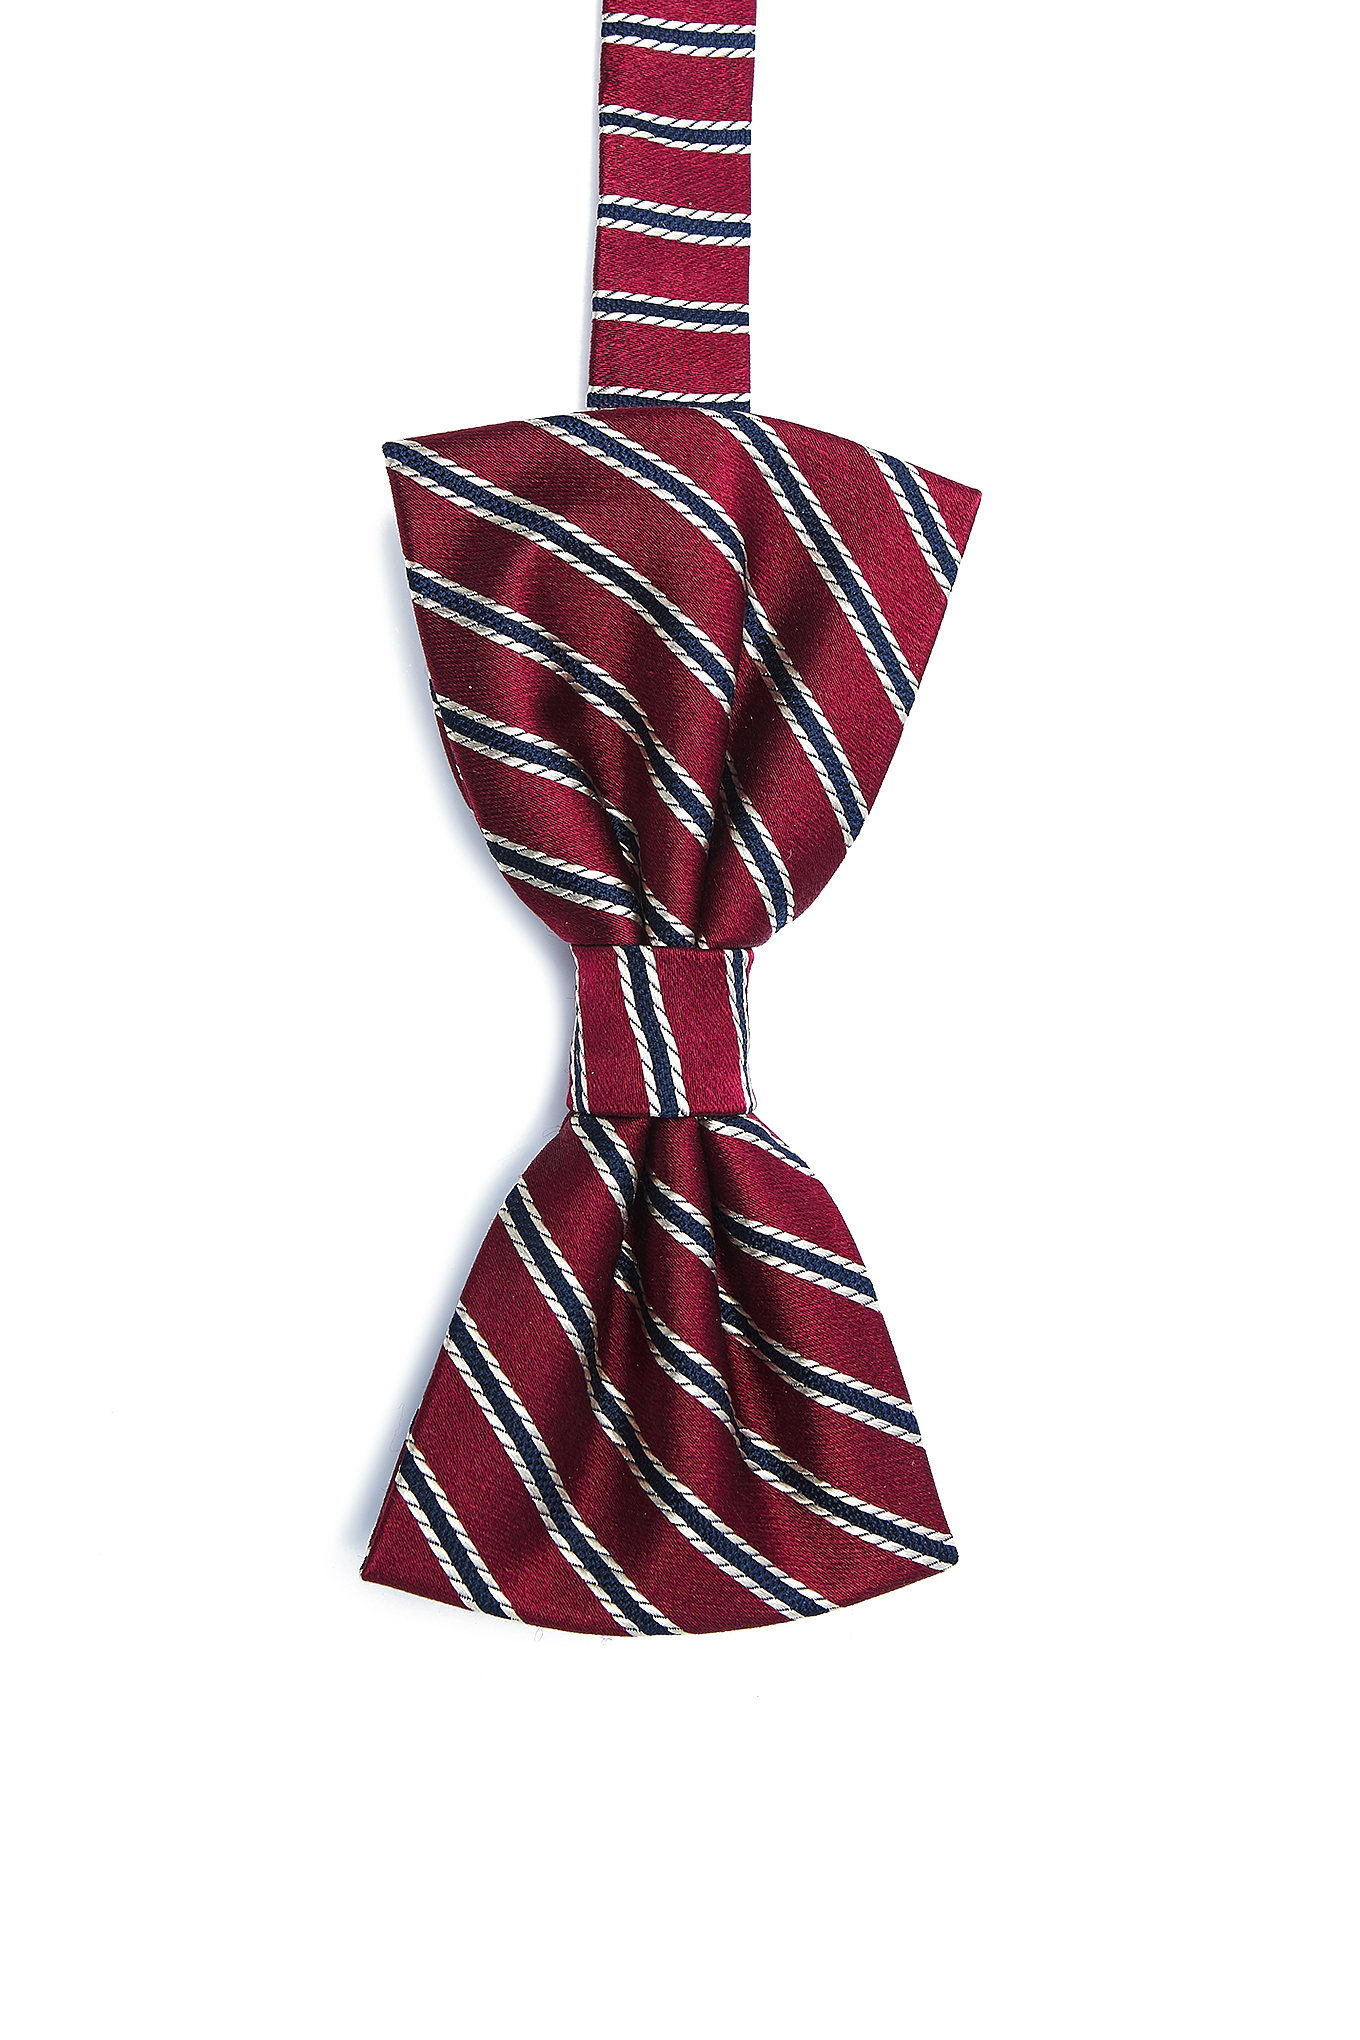 Bow Tie Bordeaux Casual Man